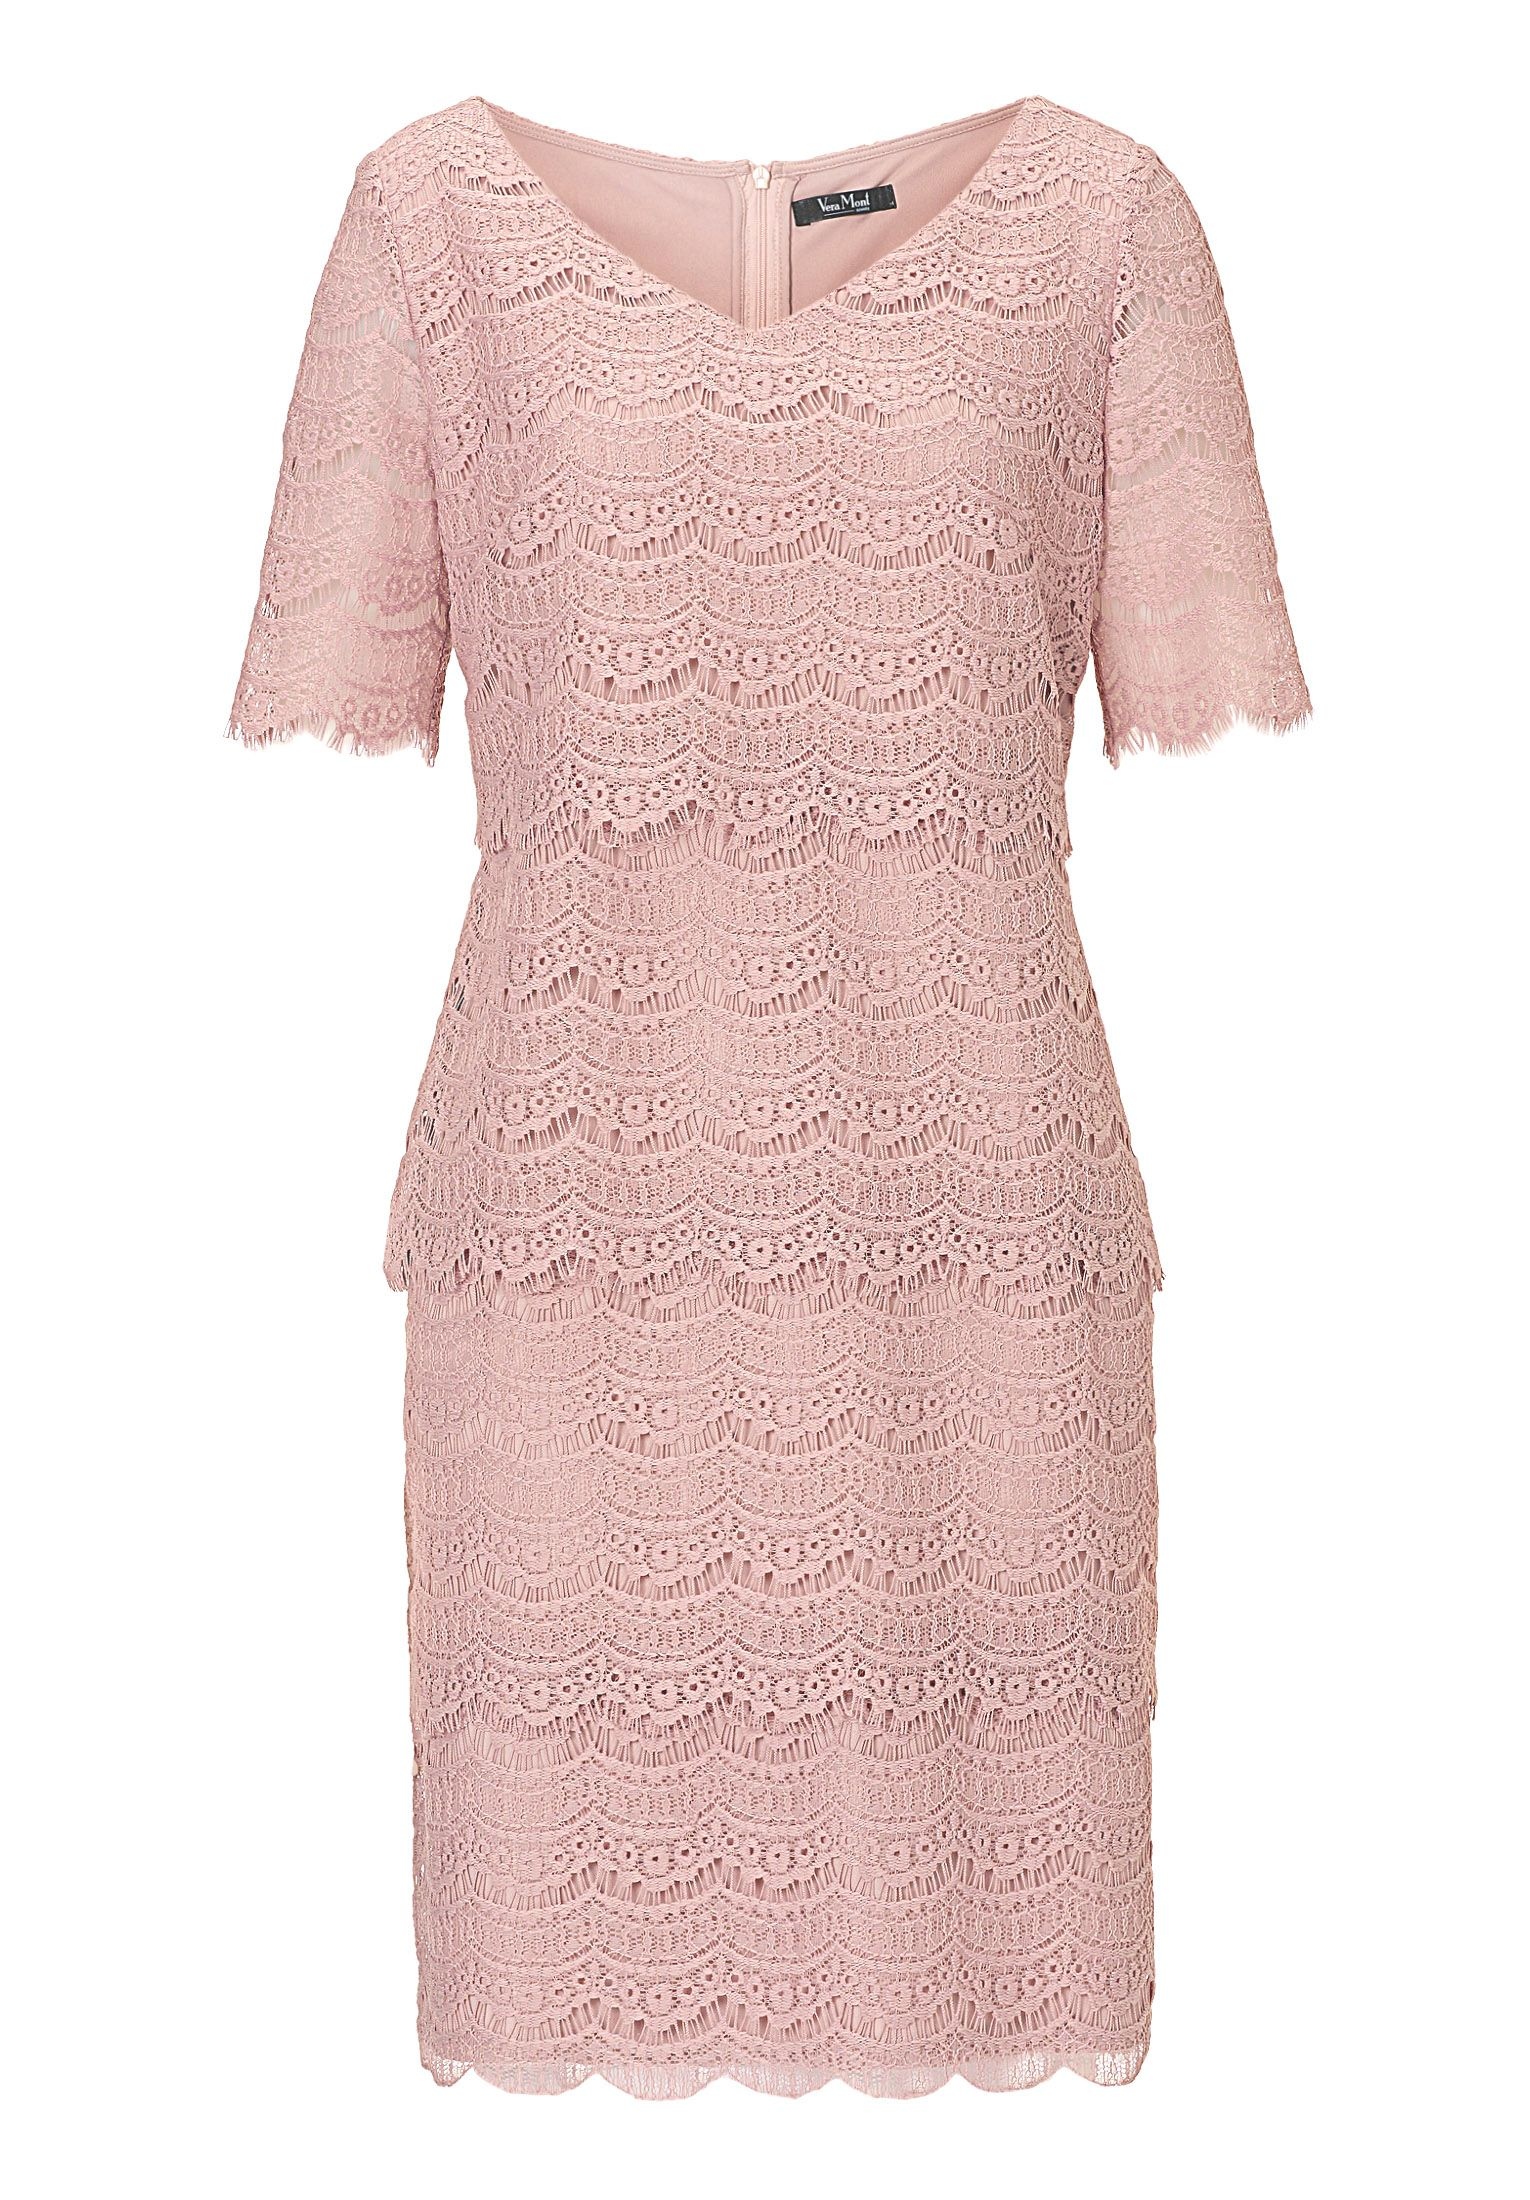 Vera Mont Tiered Lace Dress, Rose